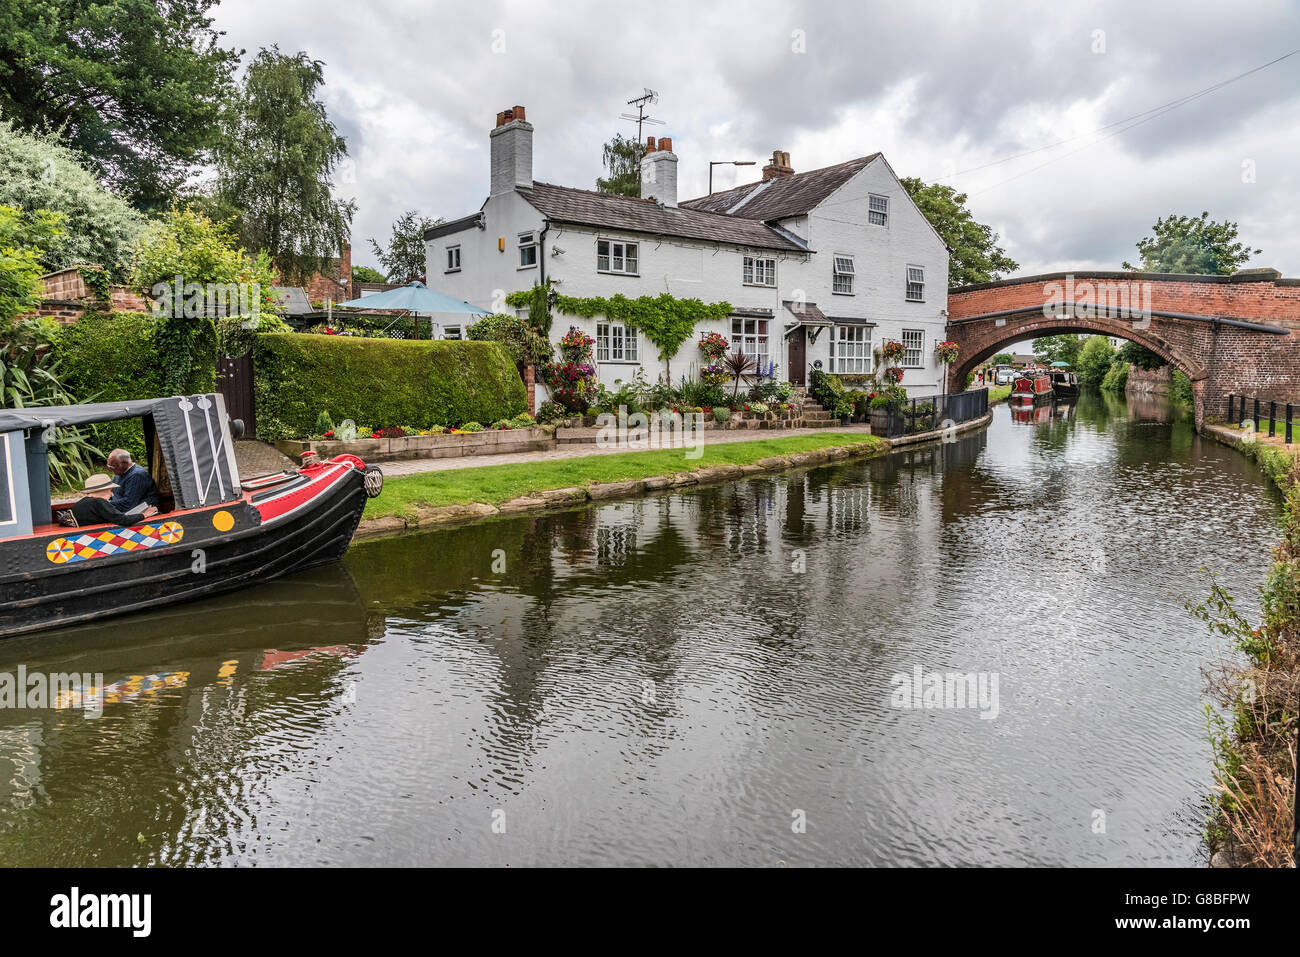 Vintage transport day at Lymm in Cheshire North West England. Parade of canal narrowboats on the Bridgewater. Bridgewater - Stock Image